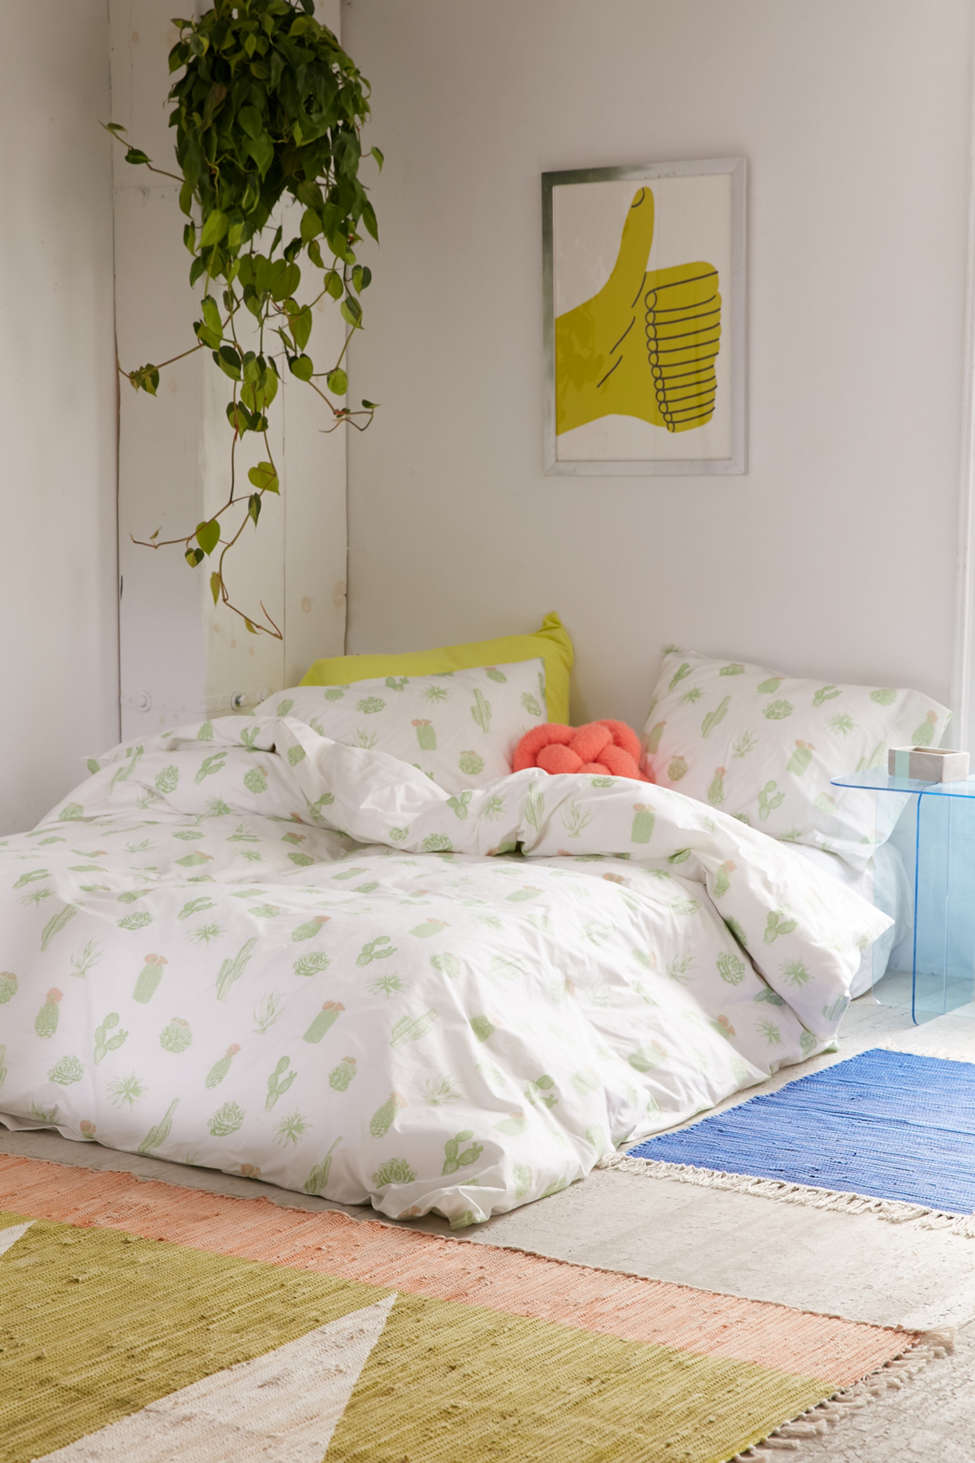 urban outfitters duvet covers Cactus Icon Duvet Cover   Urban Outfitters urban outfitters duvet covers